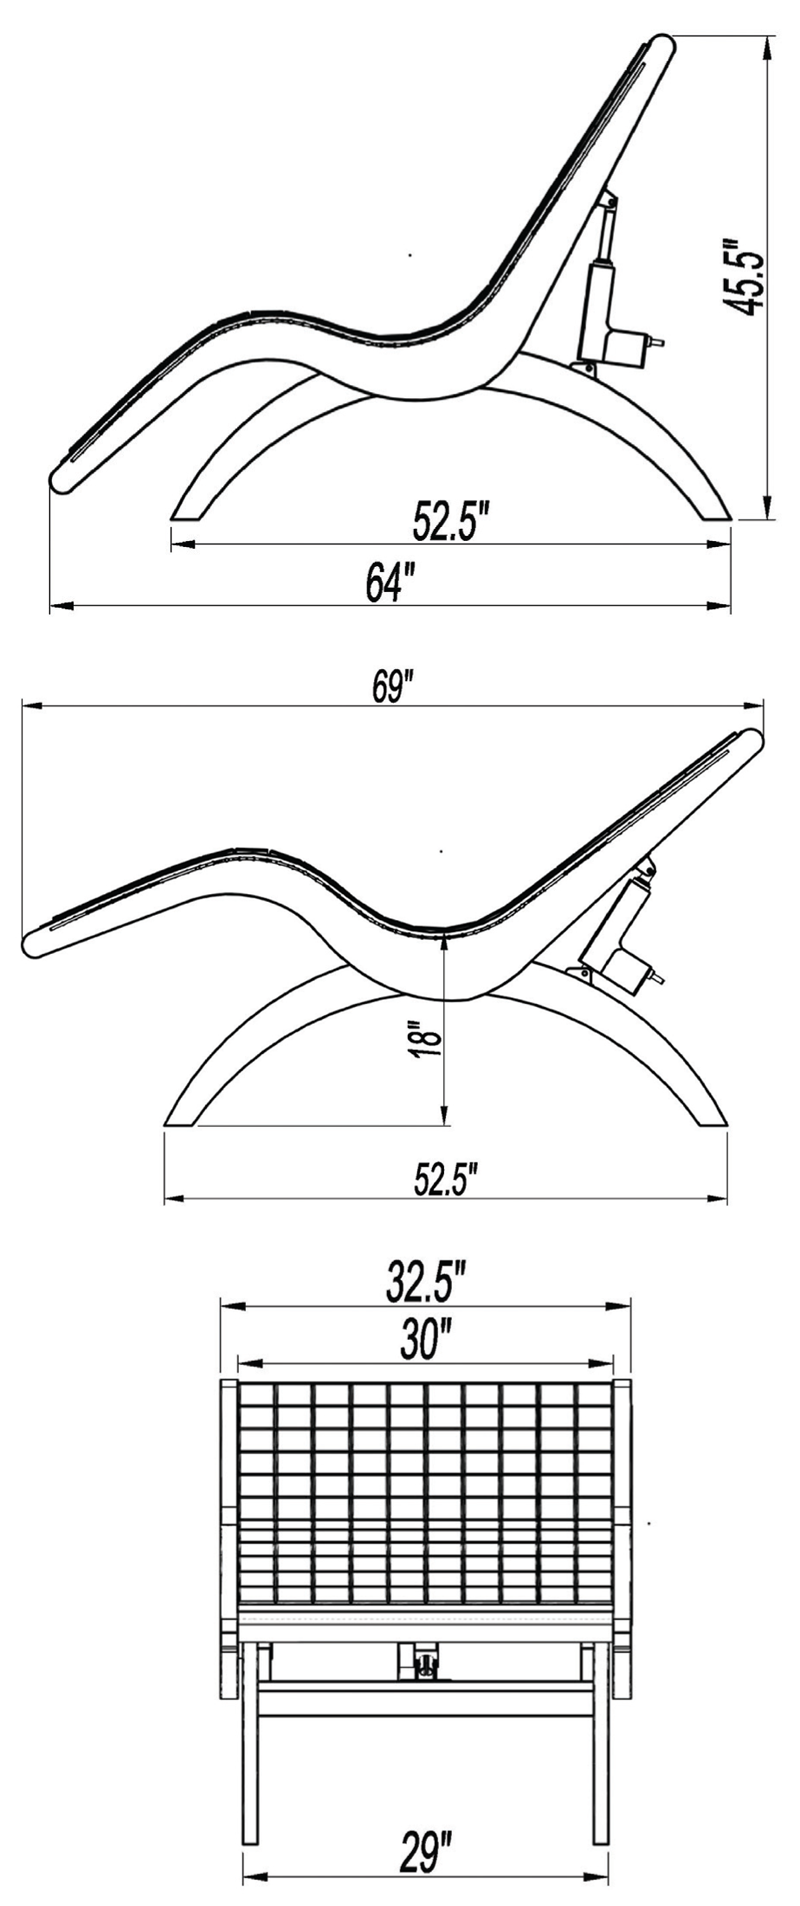 Legato Relaxation Lounge Dimensions